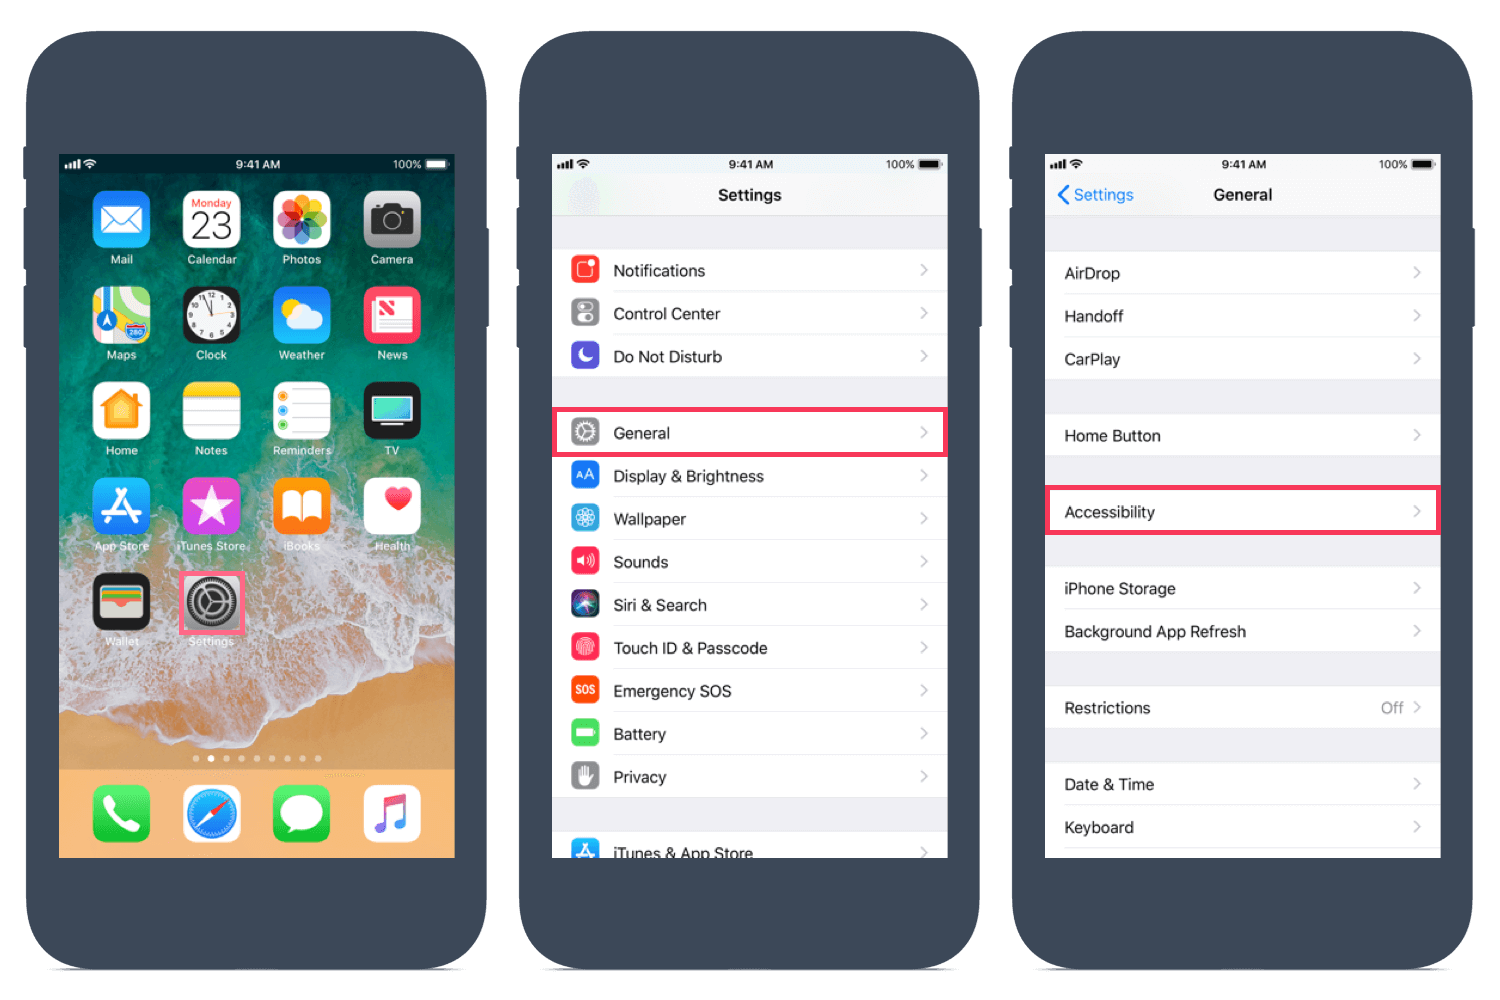 How to setup Speak Selection on iOS